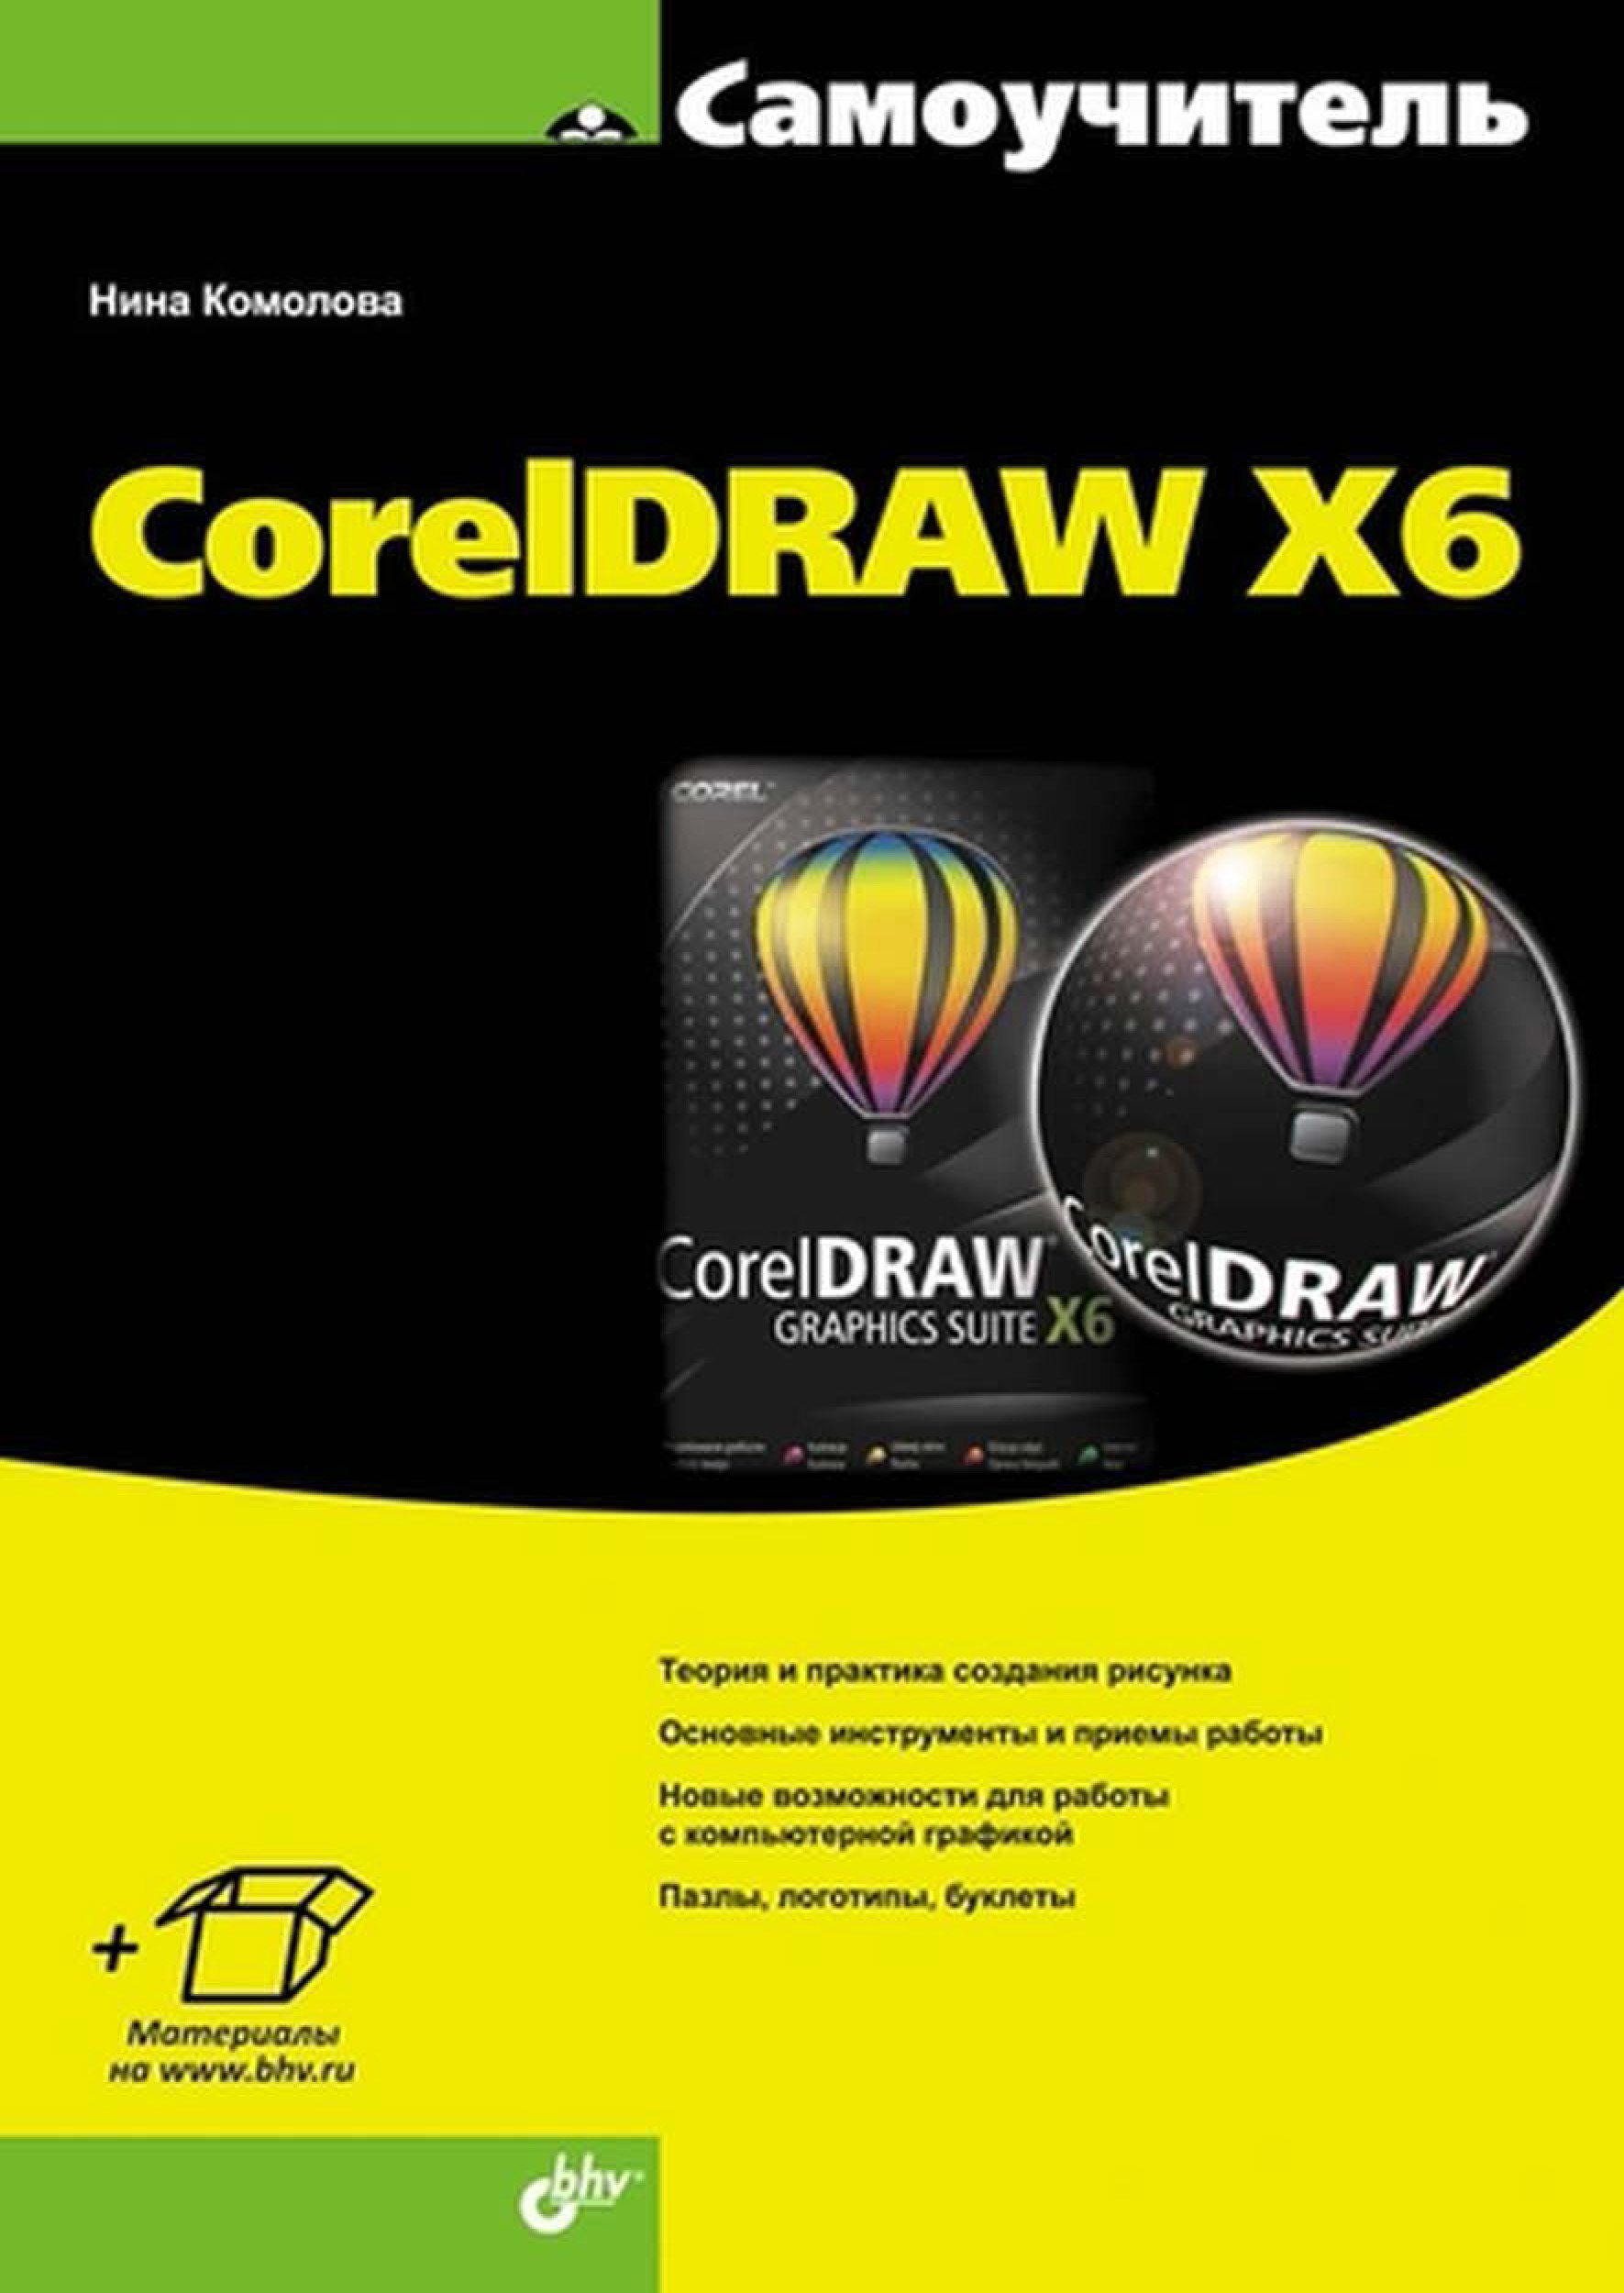 Нина Комолова CorelDRAW X6 z83v mini pc tv box intel atom x5 z8350 fanless x86 mini pc lan usb 2gb ram 32gb rom bluetooth wifi set top box